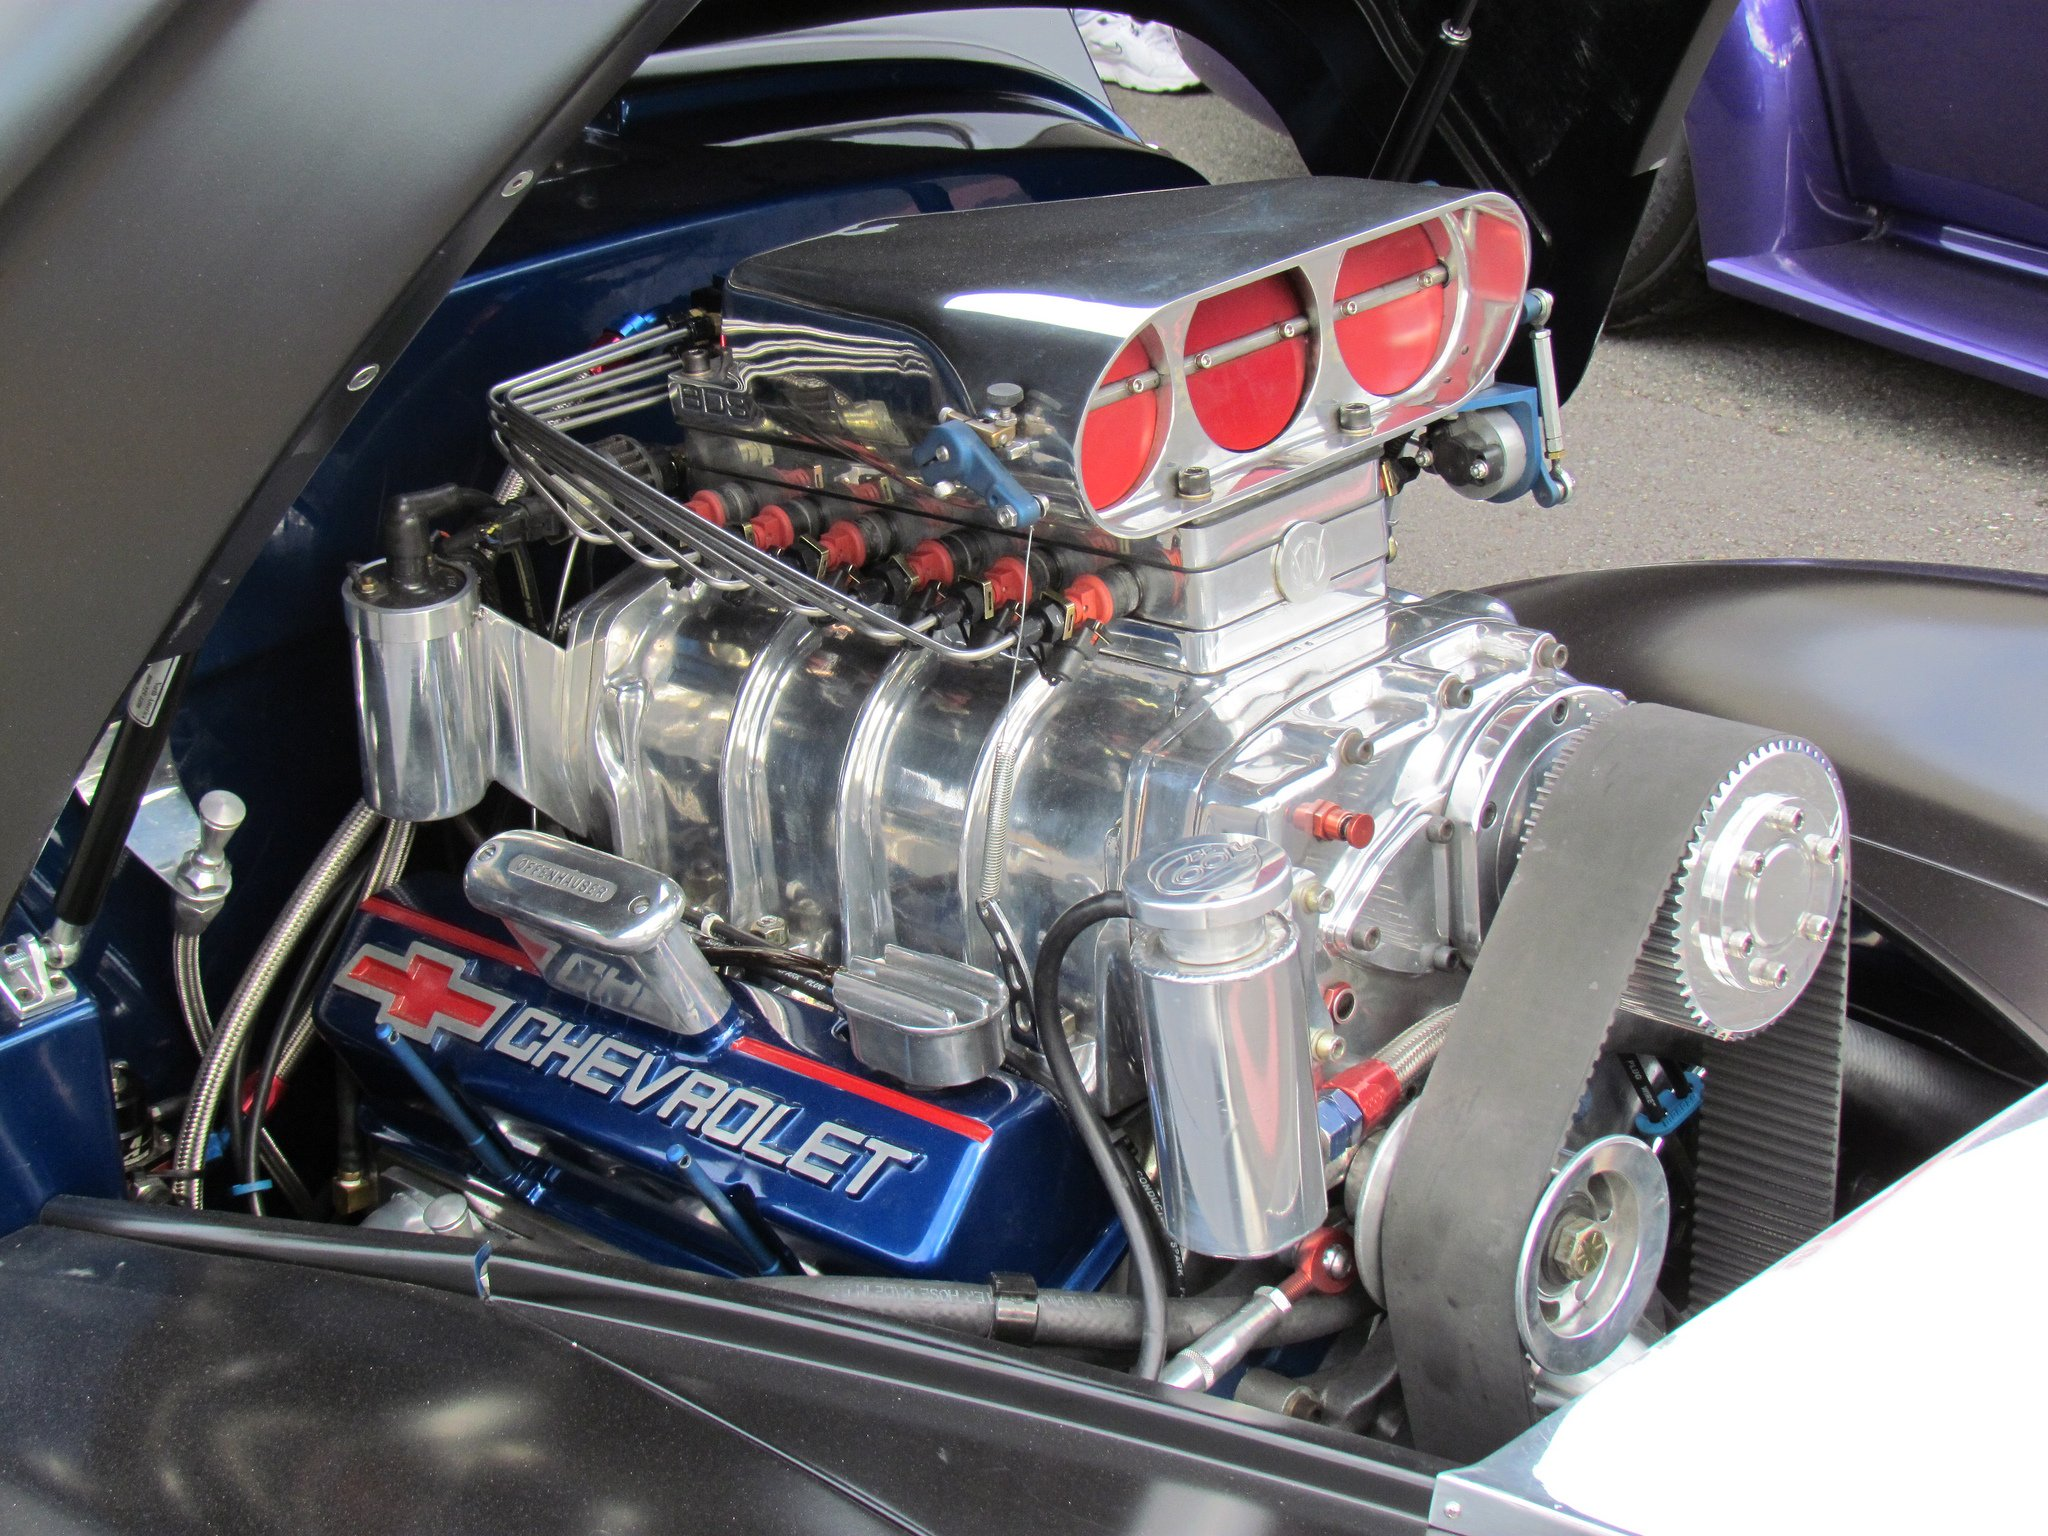 Best 54 Supercharged Wallpaper on HipWallpaper Supercharged 2048x1536